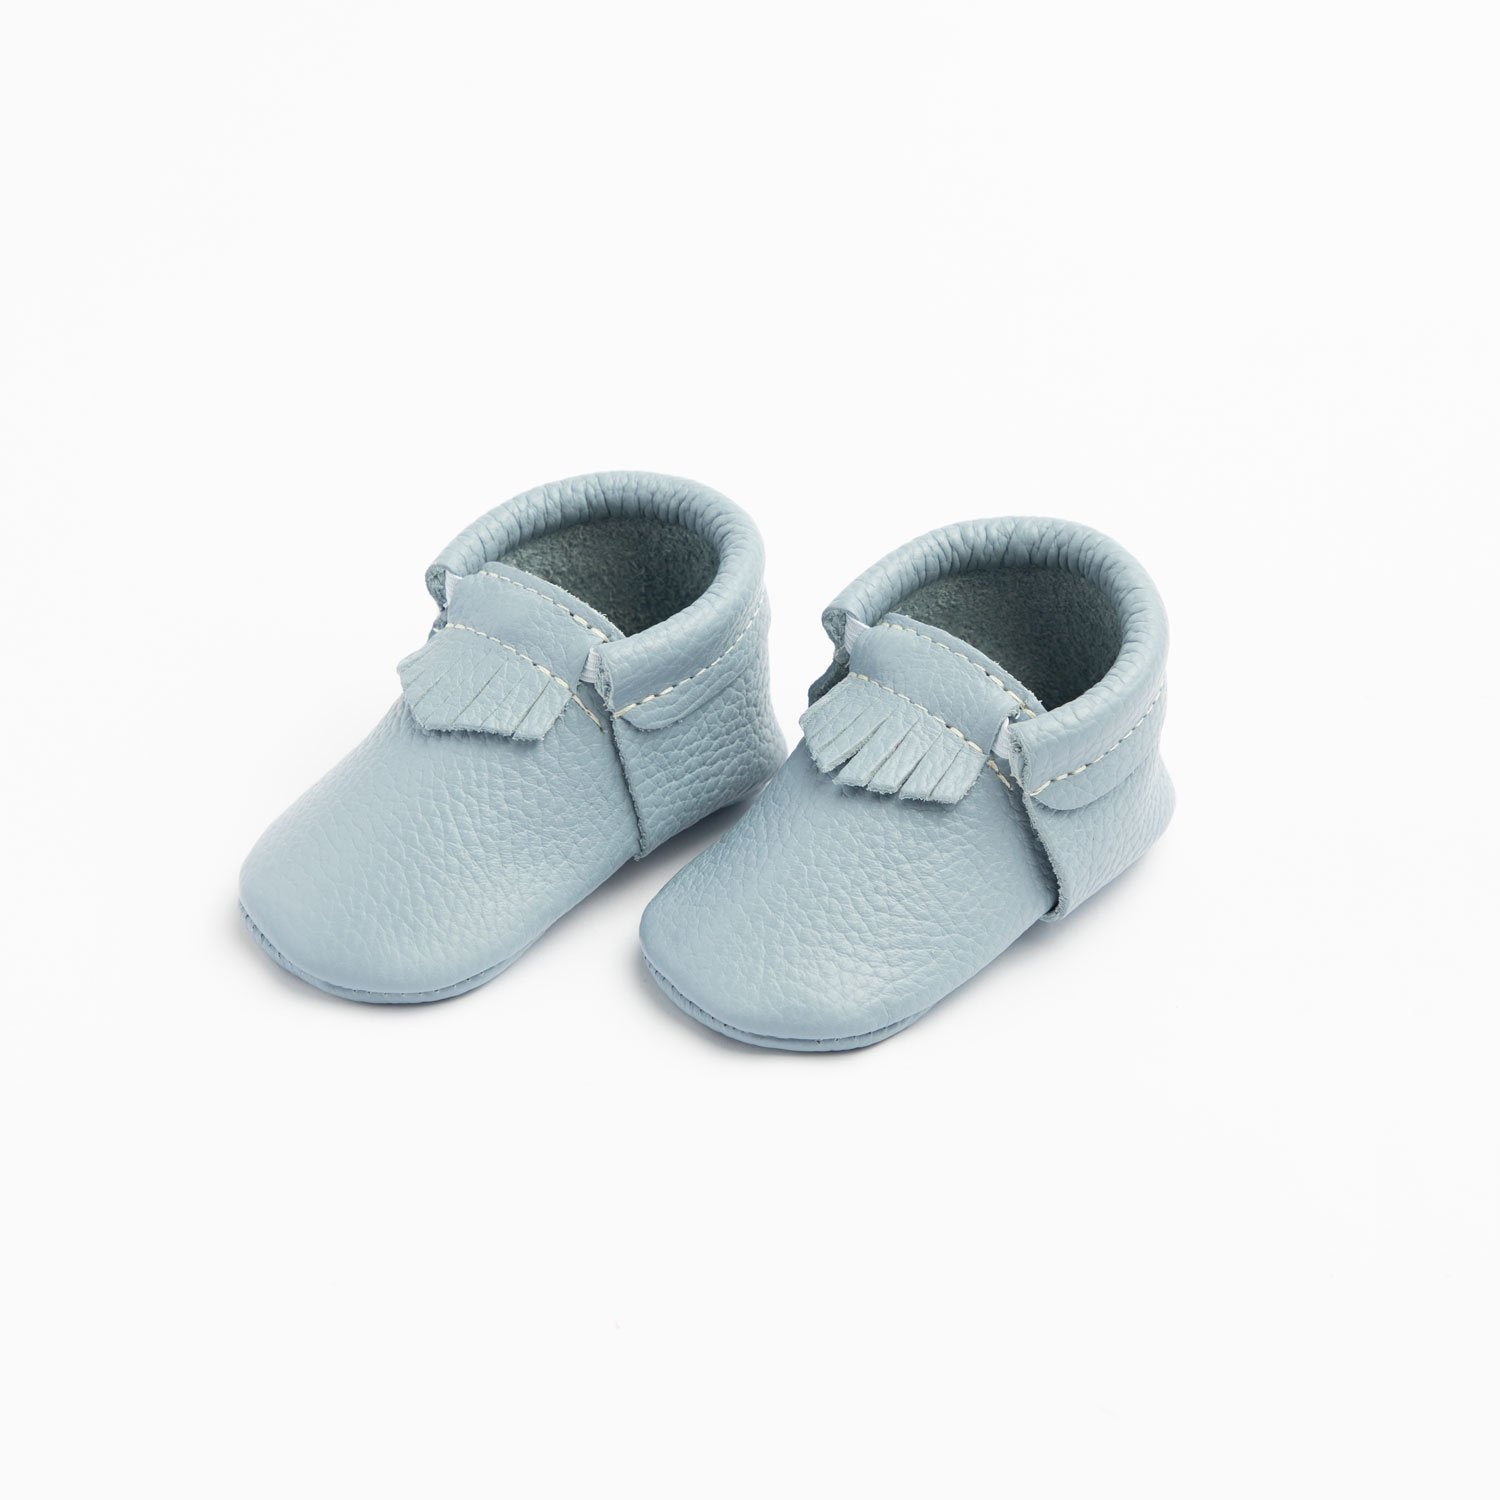 Coastal City Mocc newborn city mocc Soft Soles